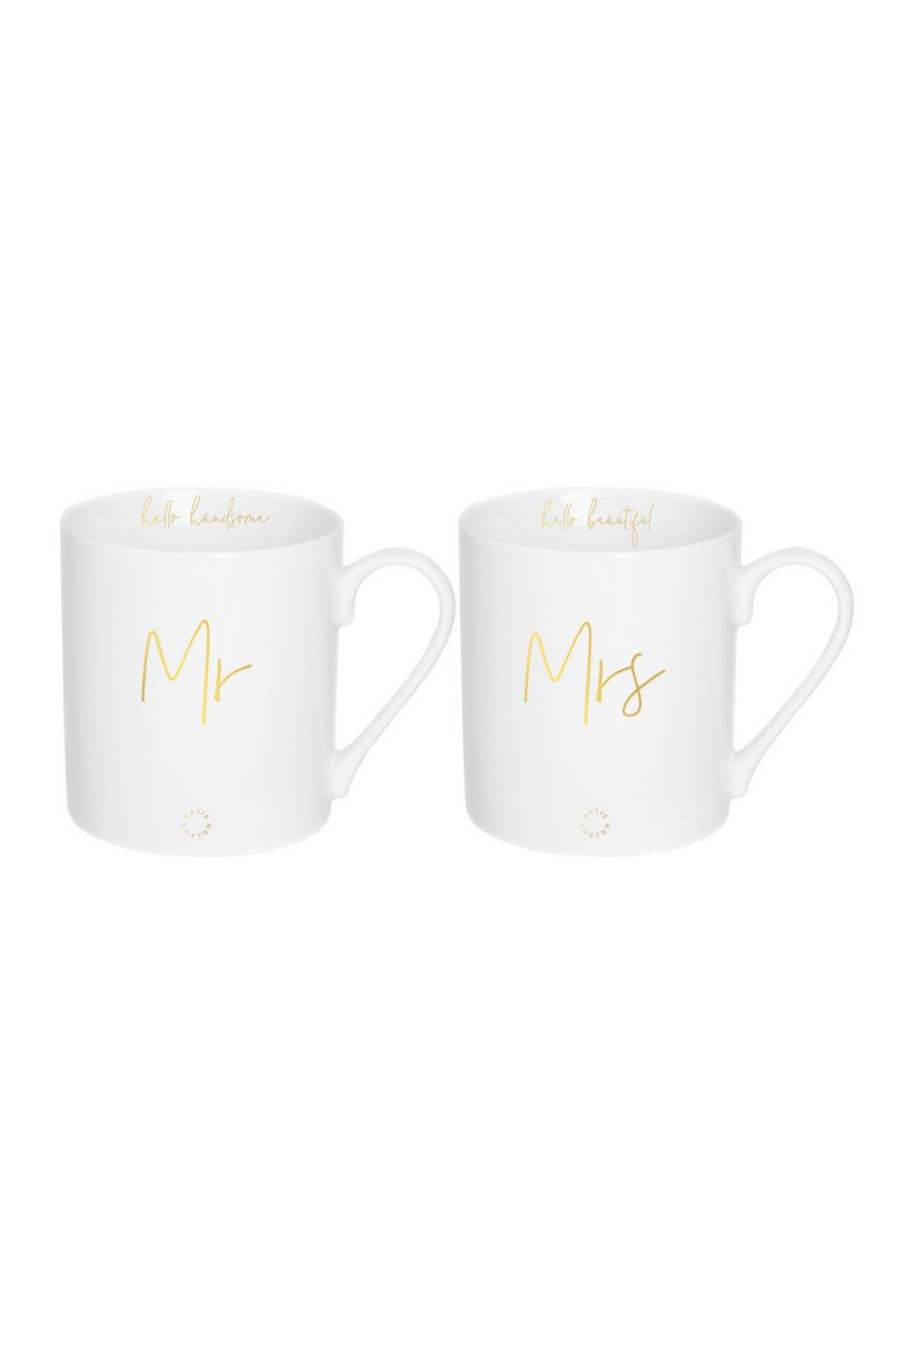 Katie Loxton Mr & Mrs Porcelain Mug Gift Set